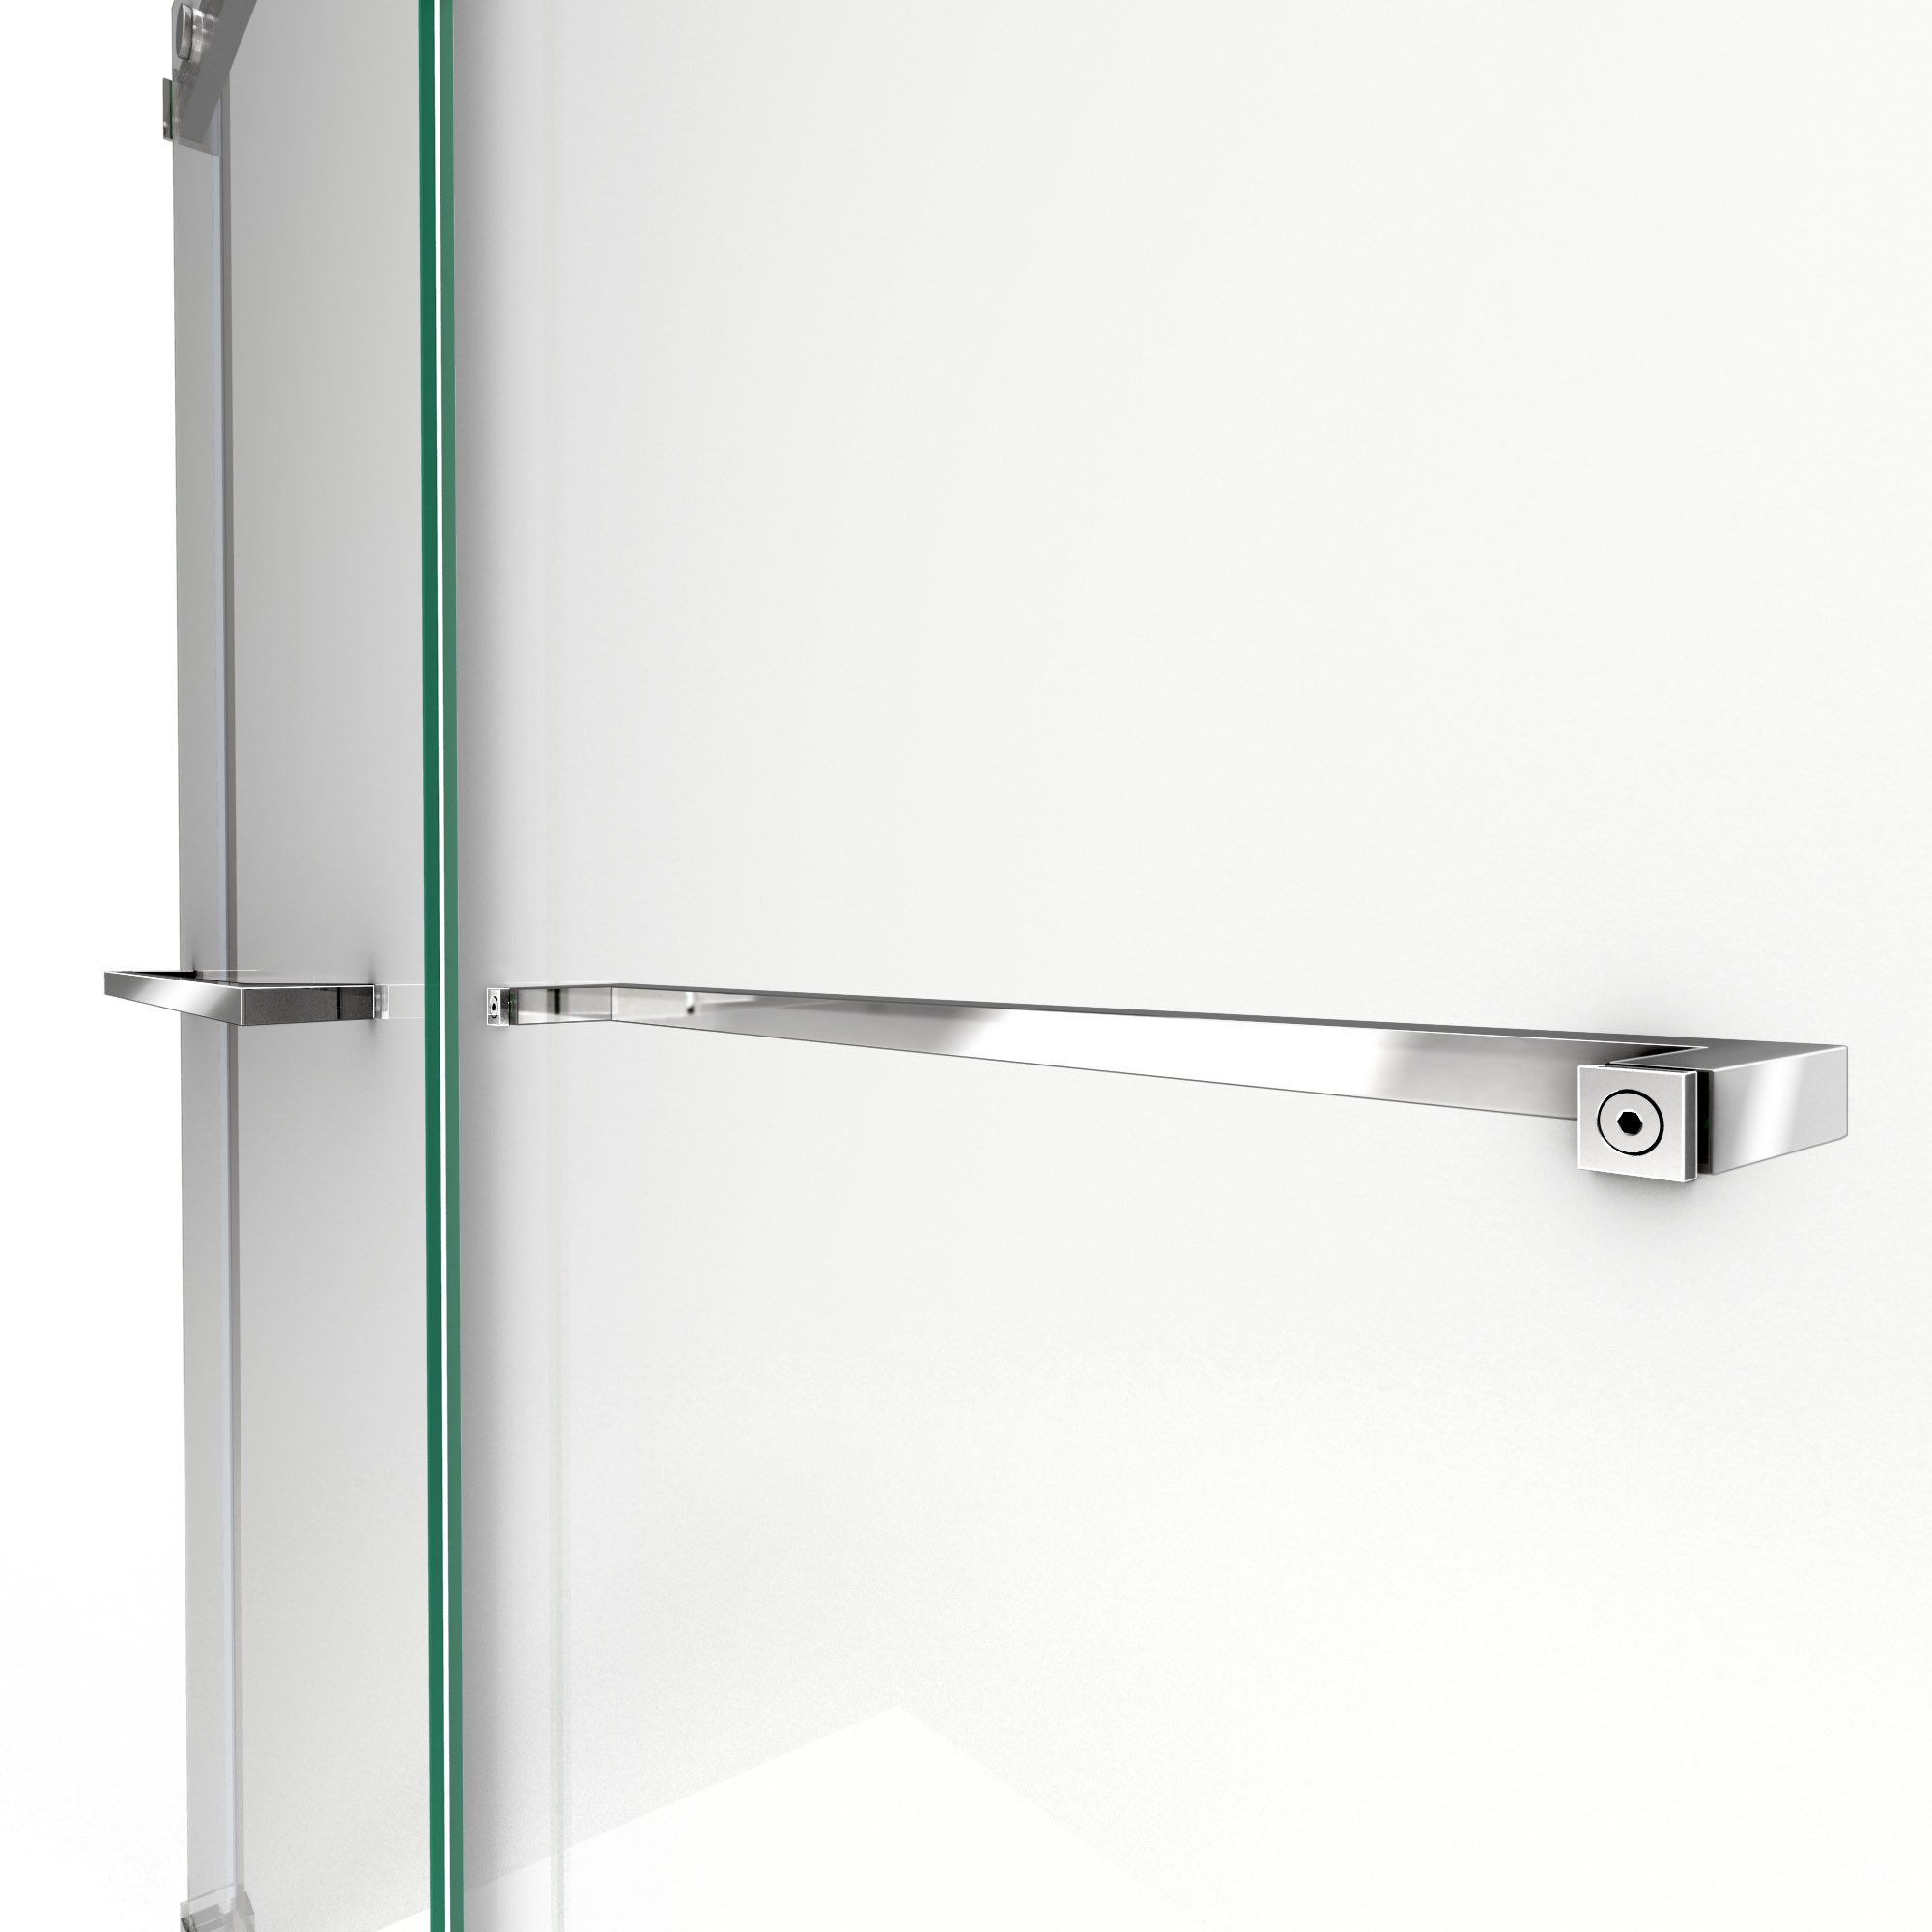 DreamLine SHDR-6360760-04  Essence 56 to 60 in. Frameless Bypass Shower Door in Brushed Nickel Finish by DreamLine (Image #6)